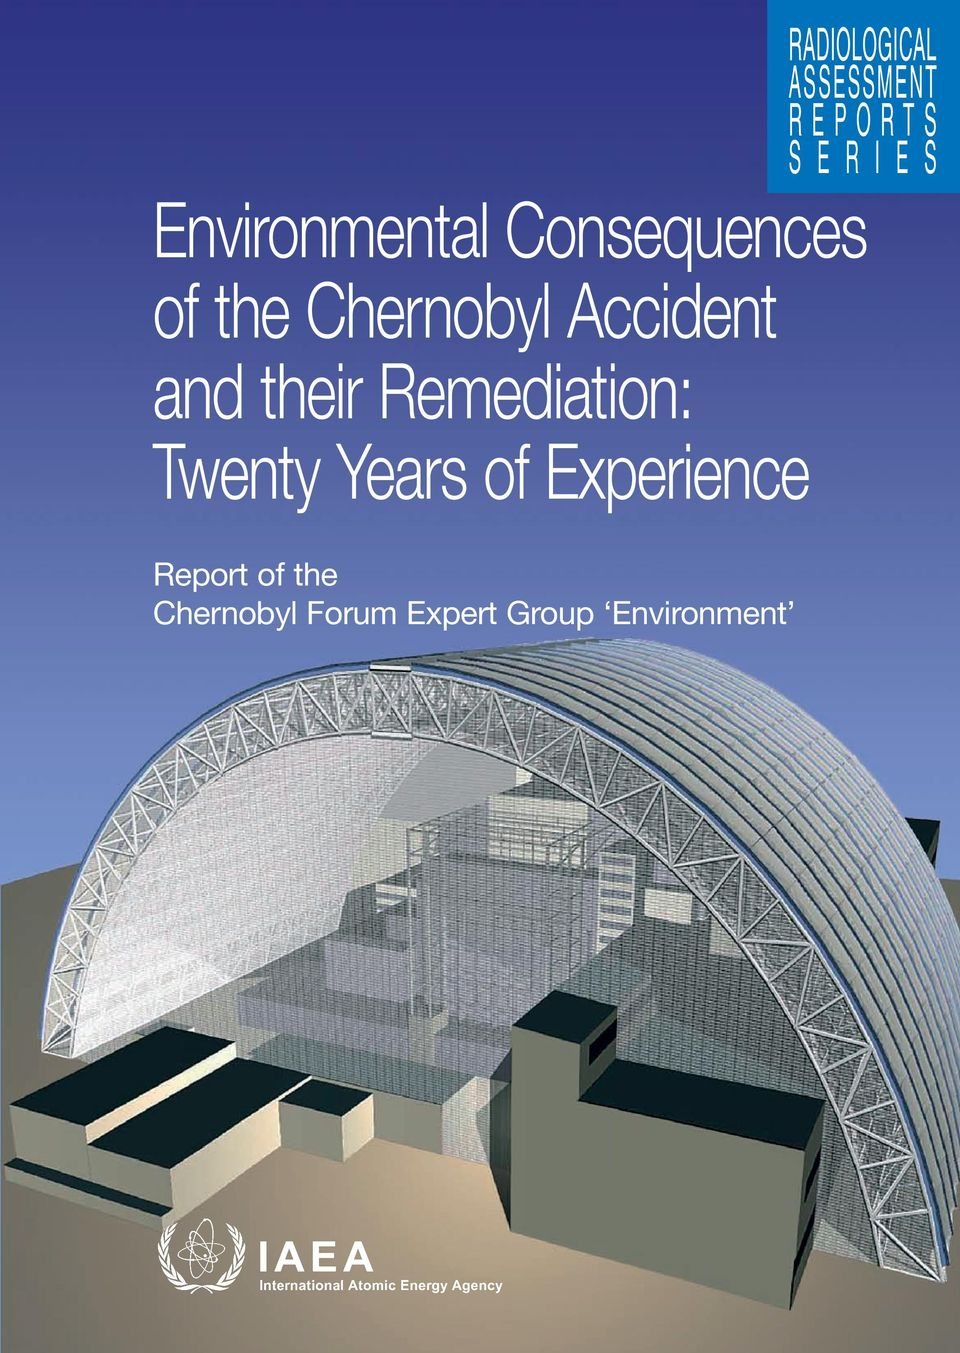 Accident and their Remediation: Twenty Years of